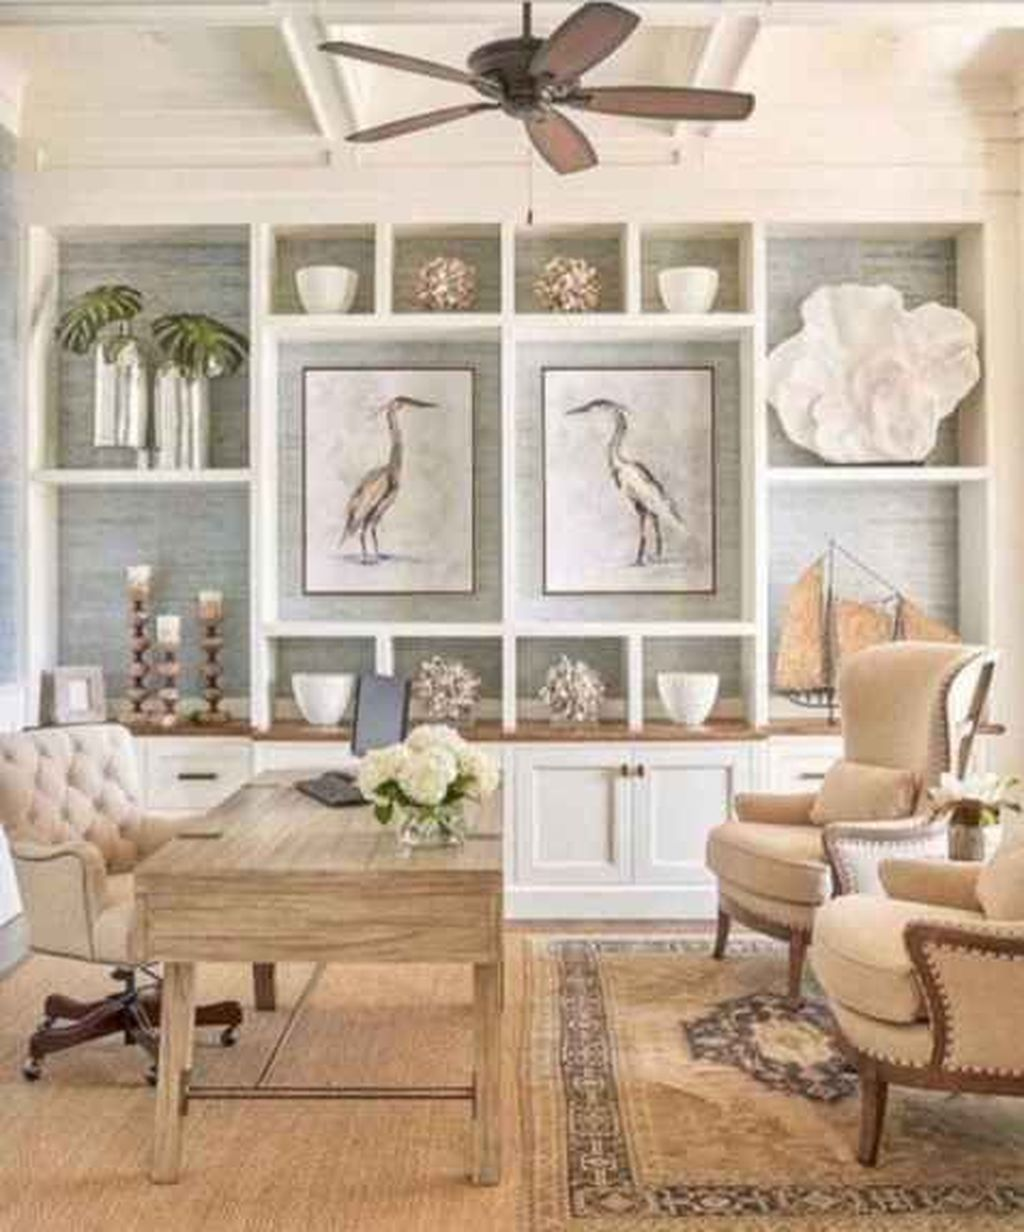 Inspiring Beachy Farmhouse Living Room Decor Ideas 34